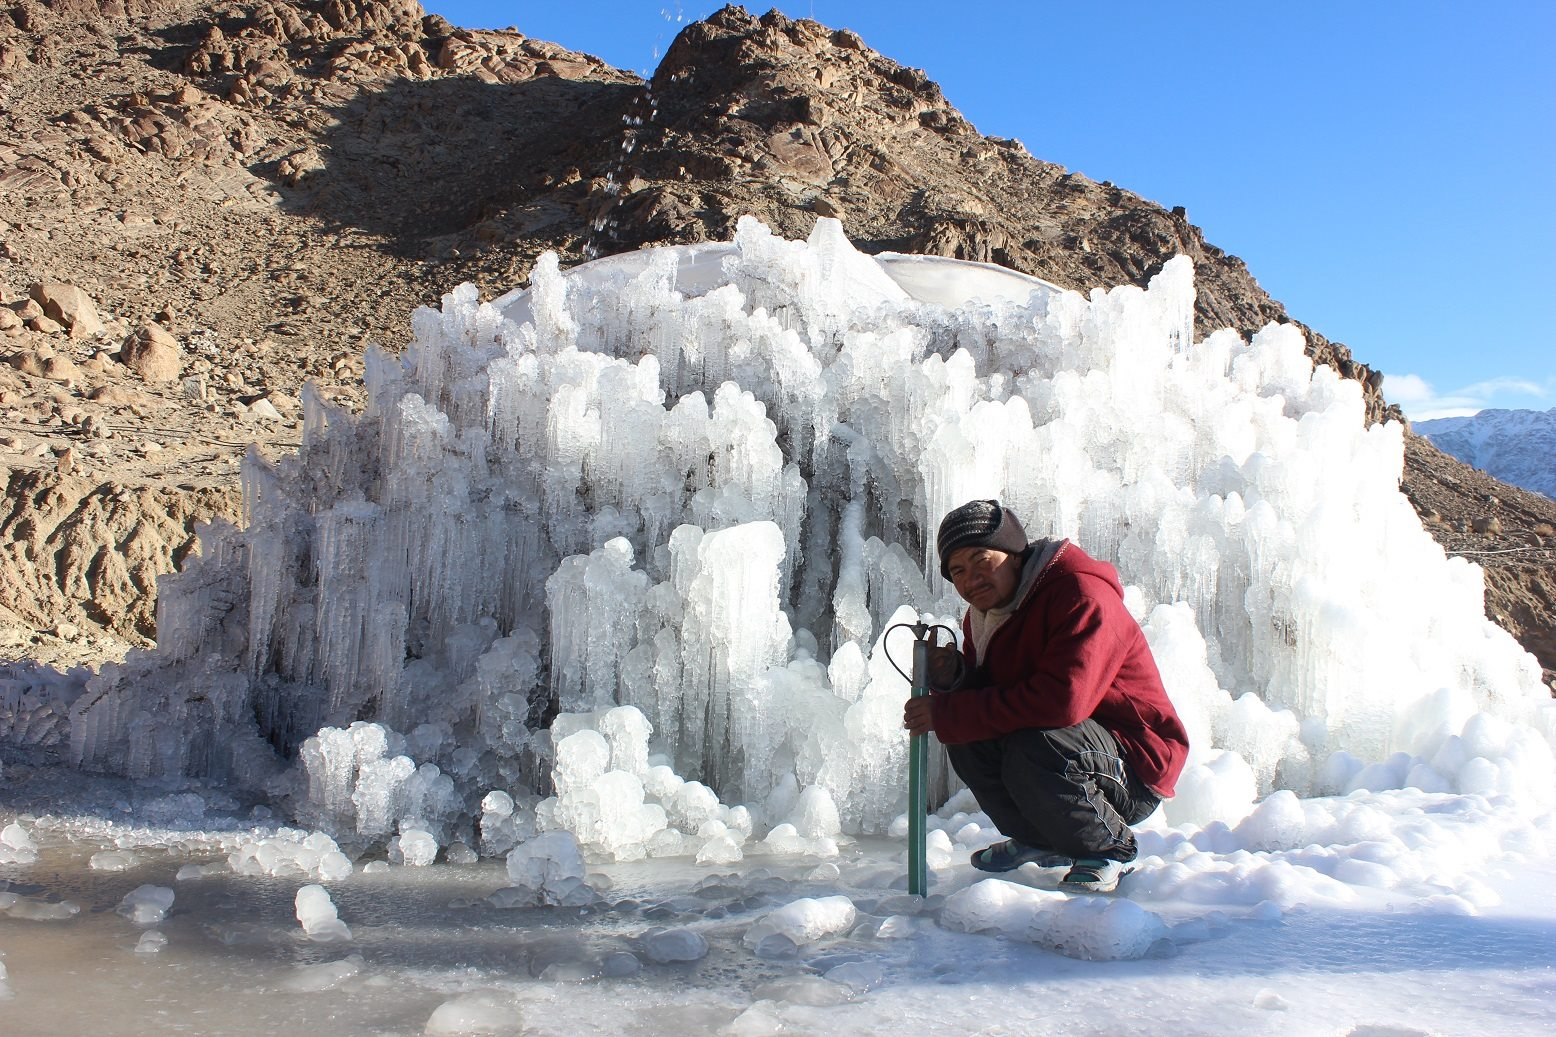 Image from The Ice Stupa Project  gallery .